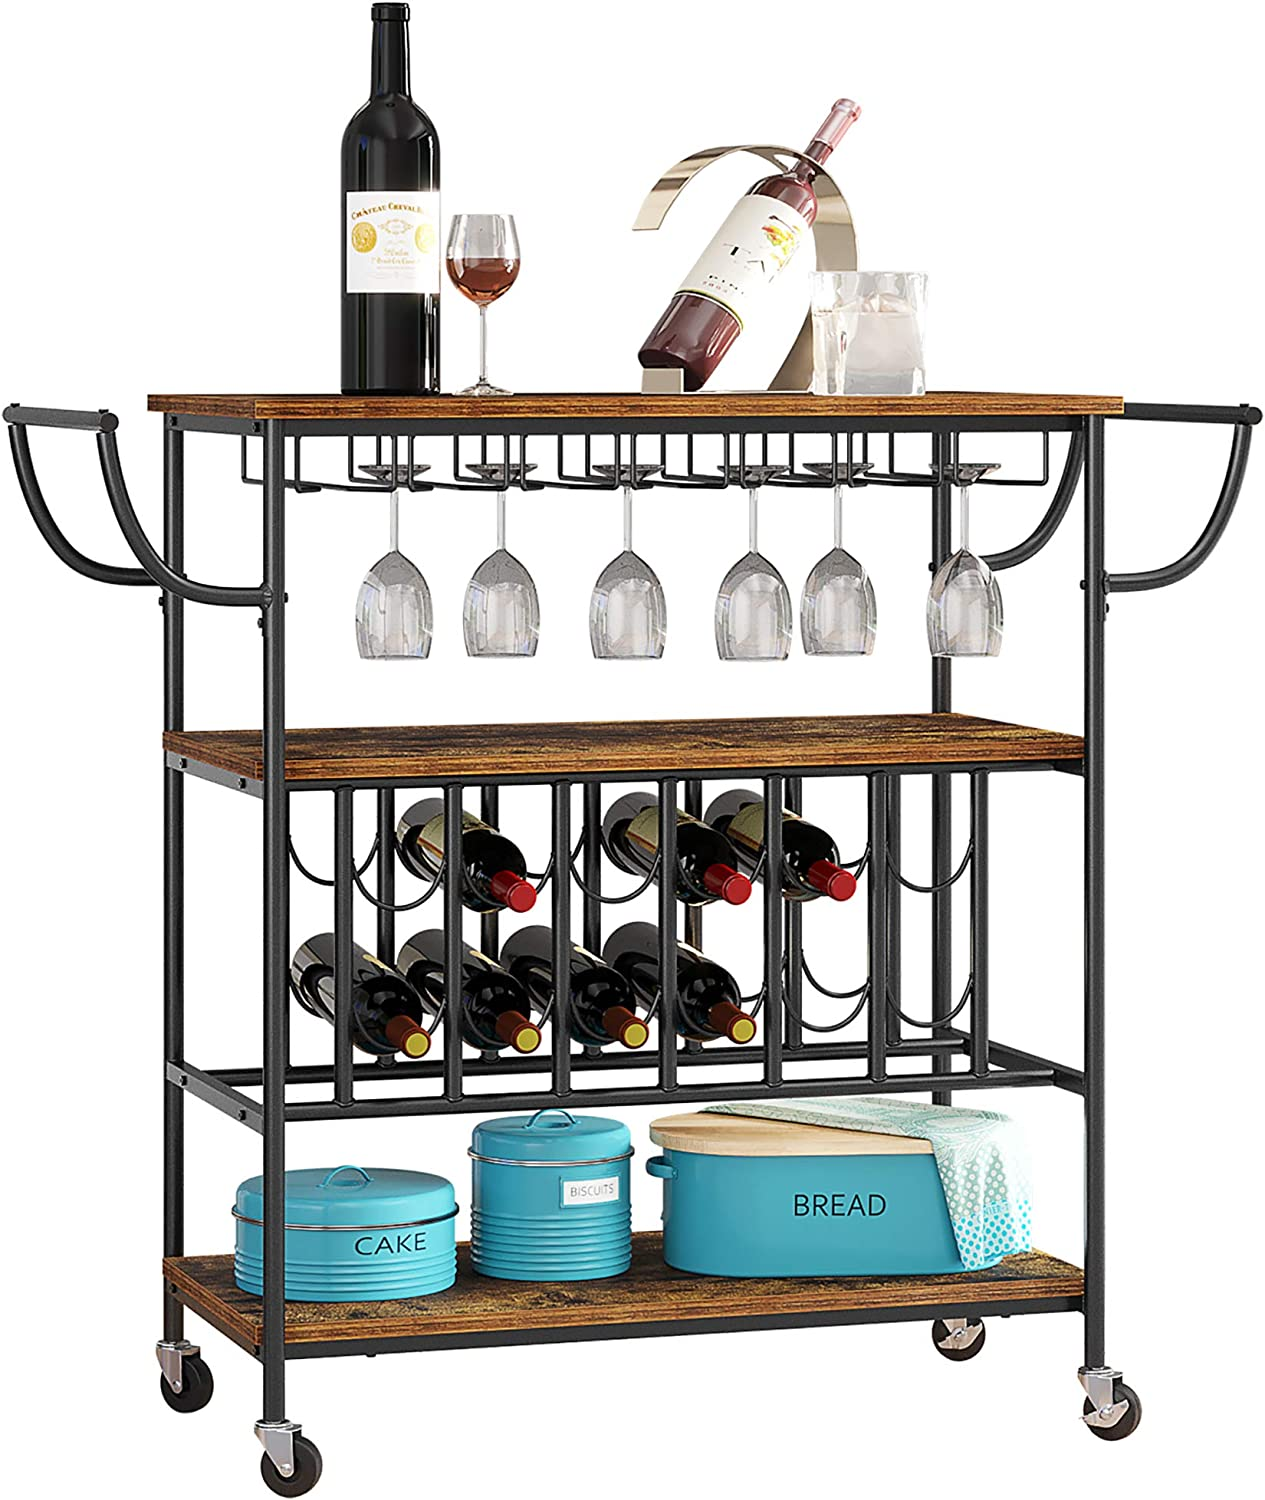 HOME BI Bar Carts for Home, Industrial Mobile Carts with Wine Rack and Glass Holder, Metal Wood Wine Cart on Wheels, Utility Kitchen Serving Cart with Storage 3 Shelves (Rustic Brown, S)